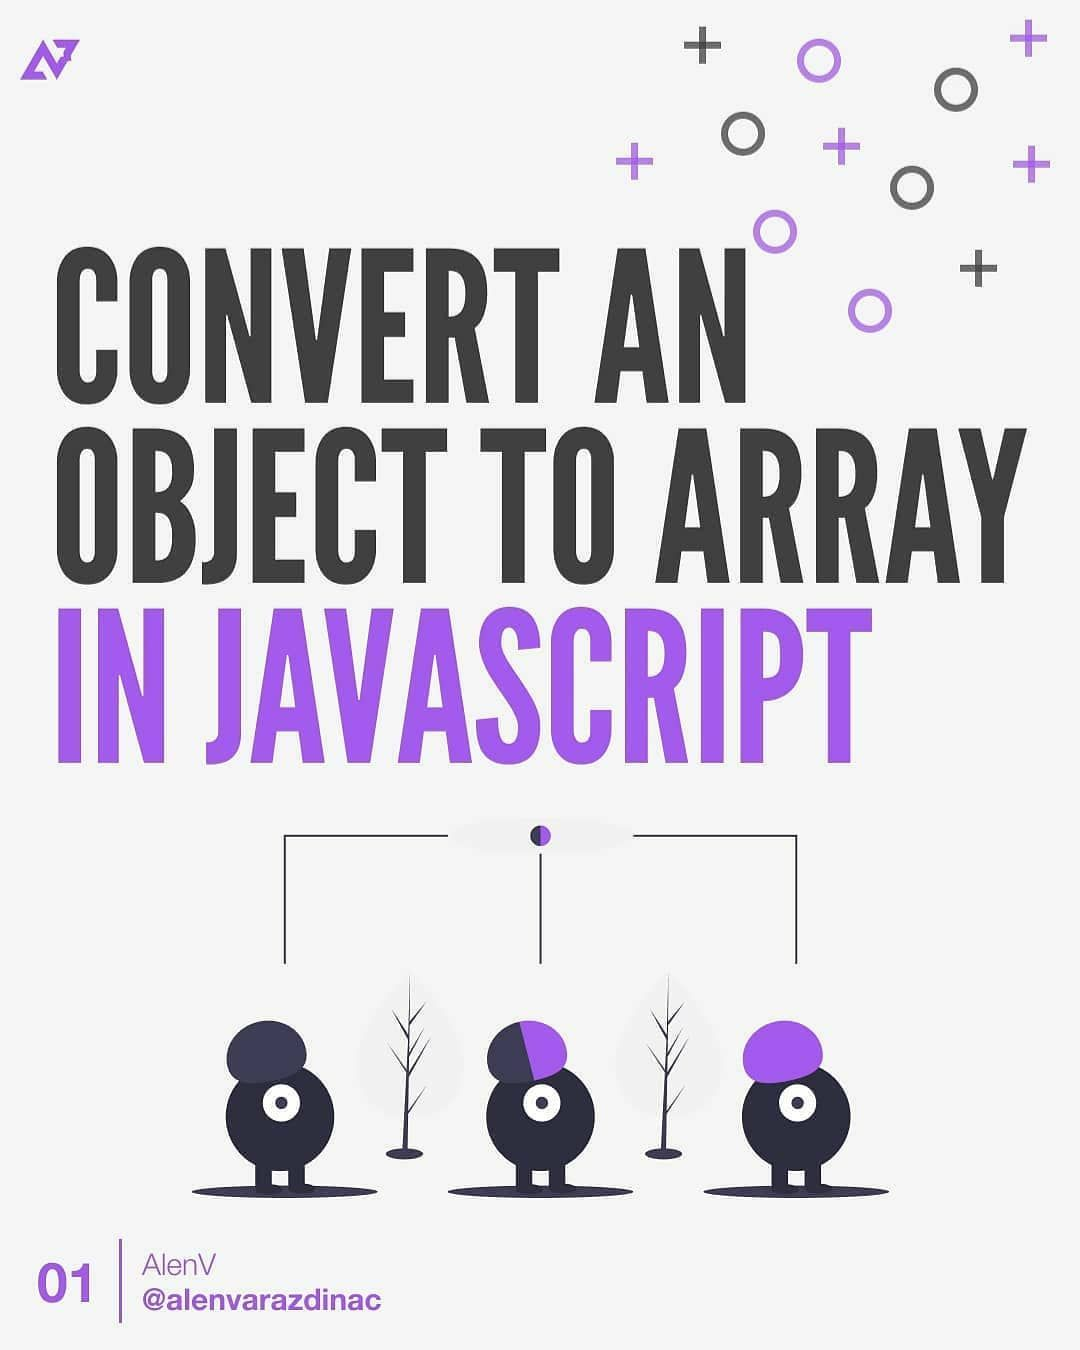 Convert an objetct to array in javascript